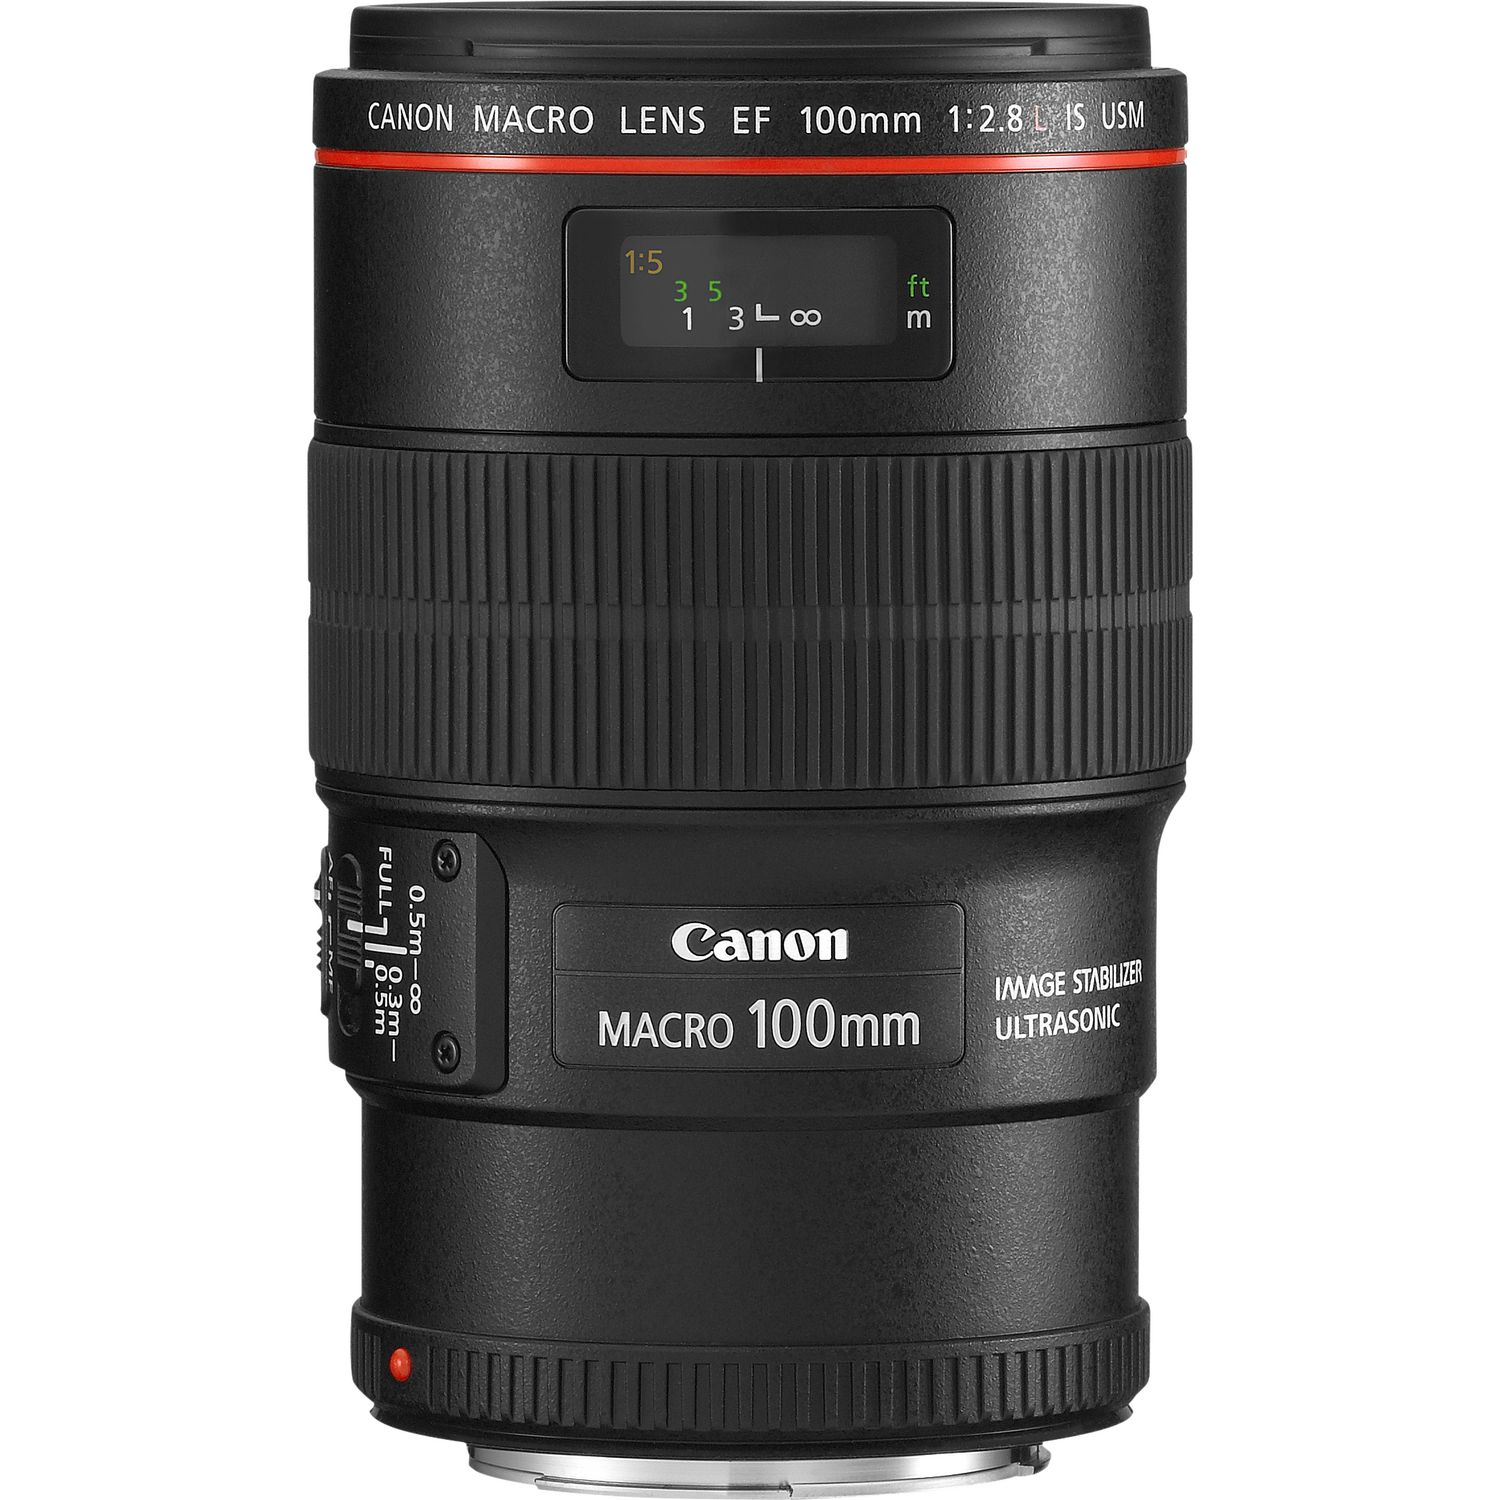 Pictures Taken With Canon 100mm F 28 Macro Lens - PictureMeta